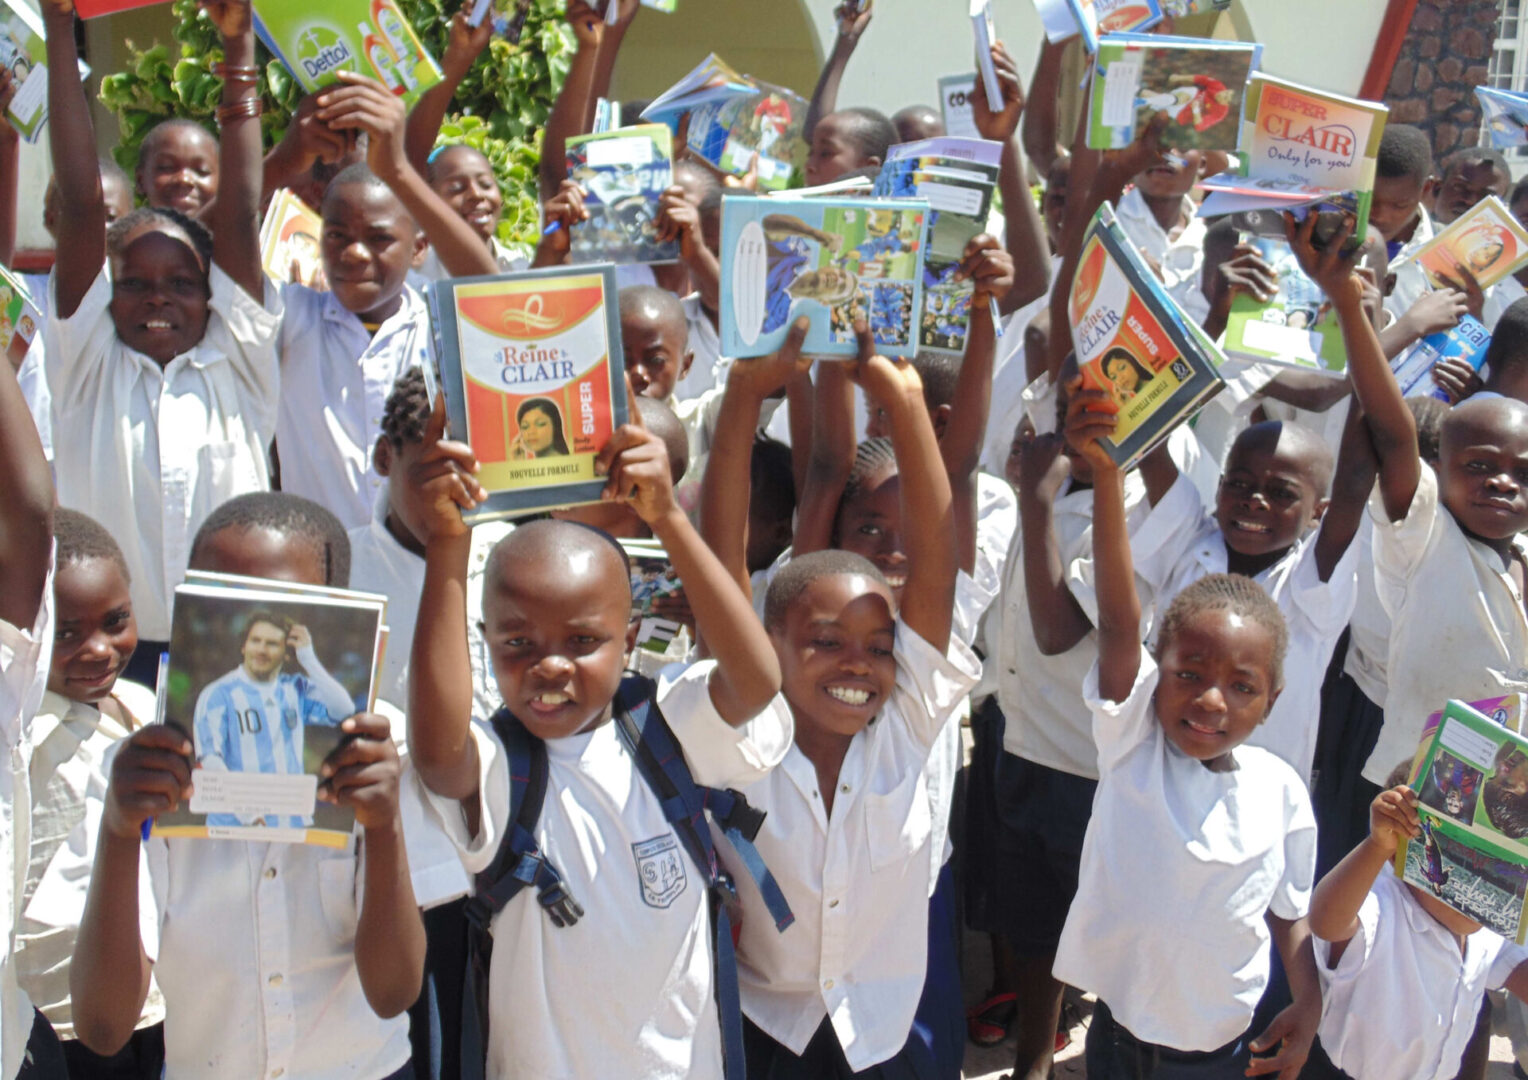 Kids smiling and raising books in the air